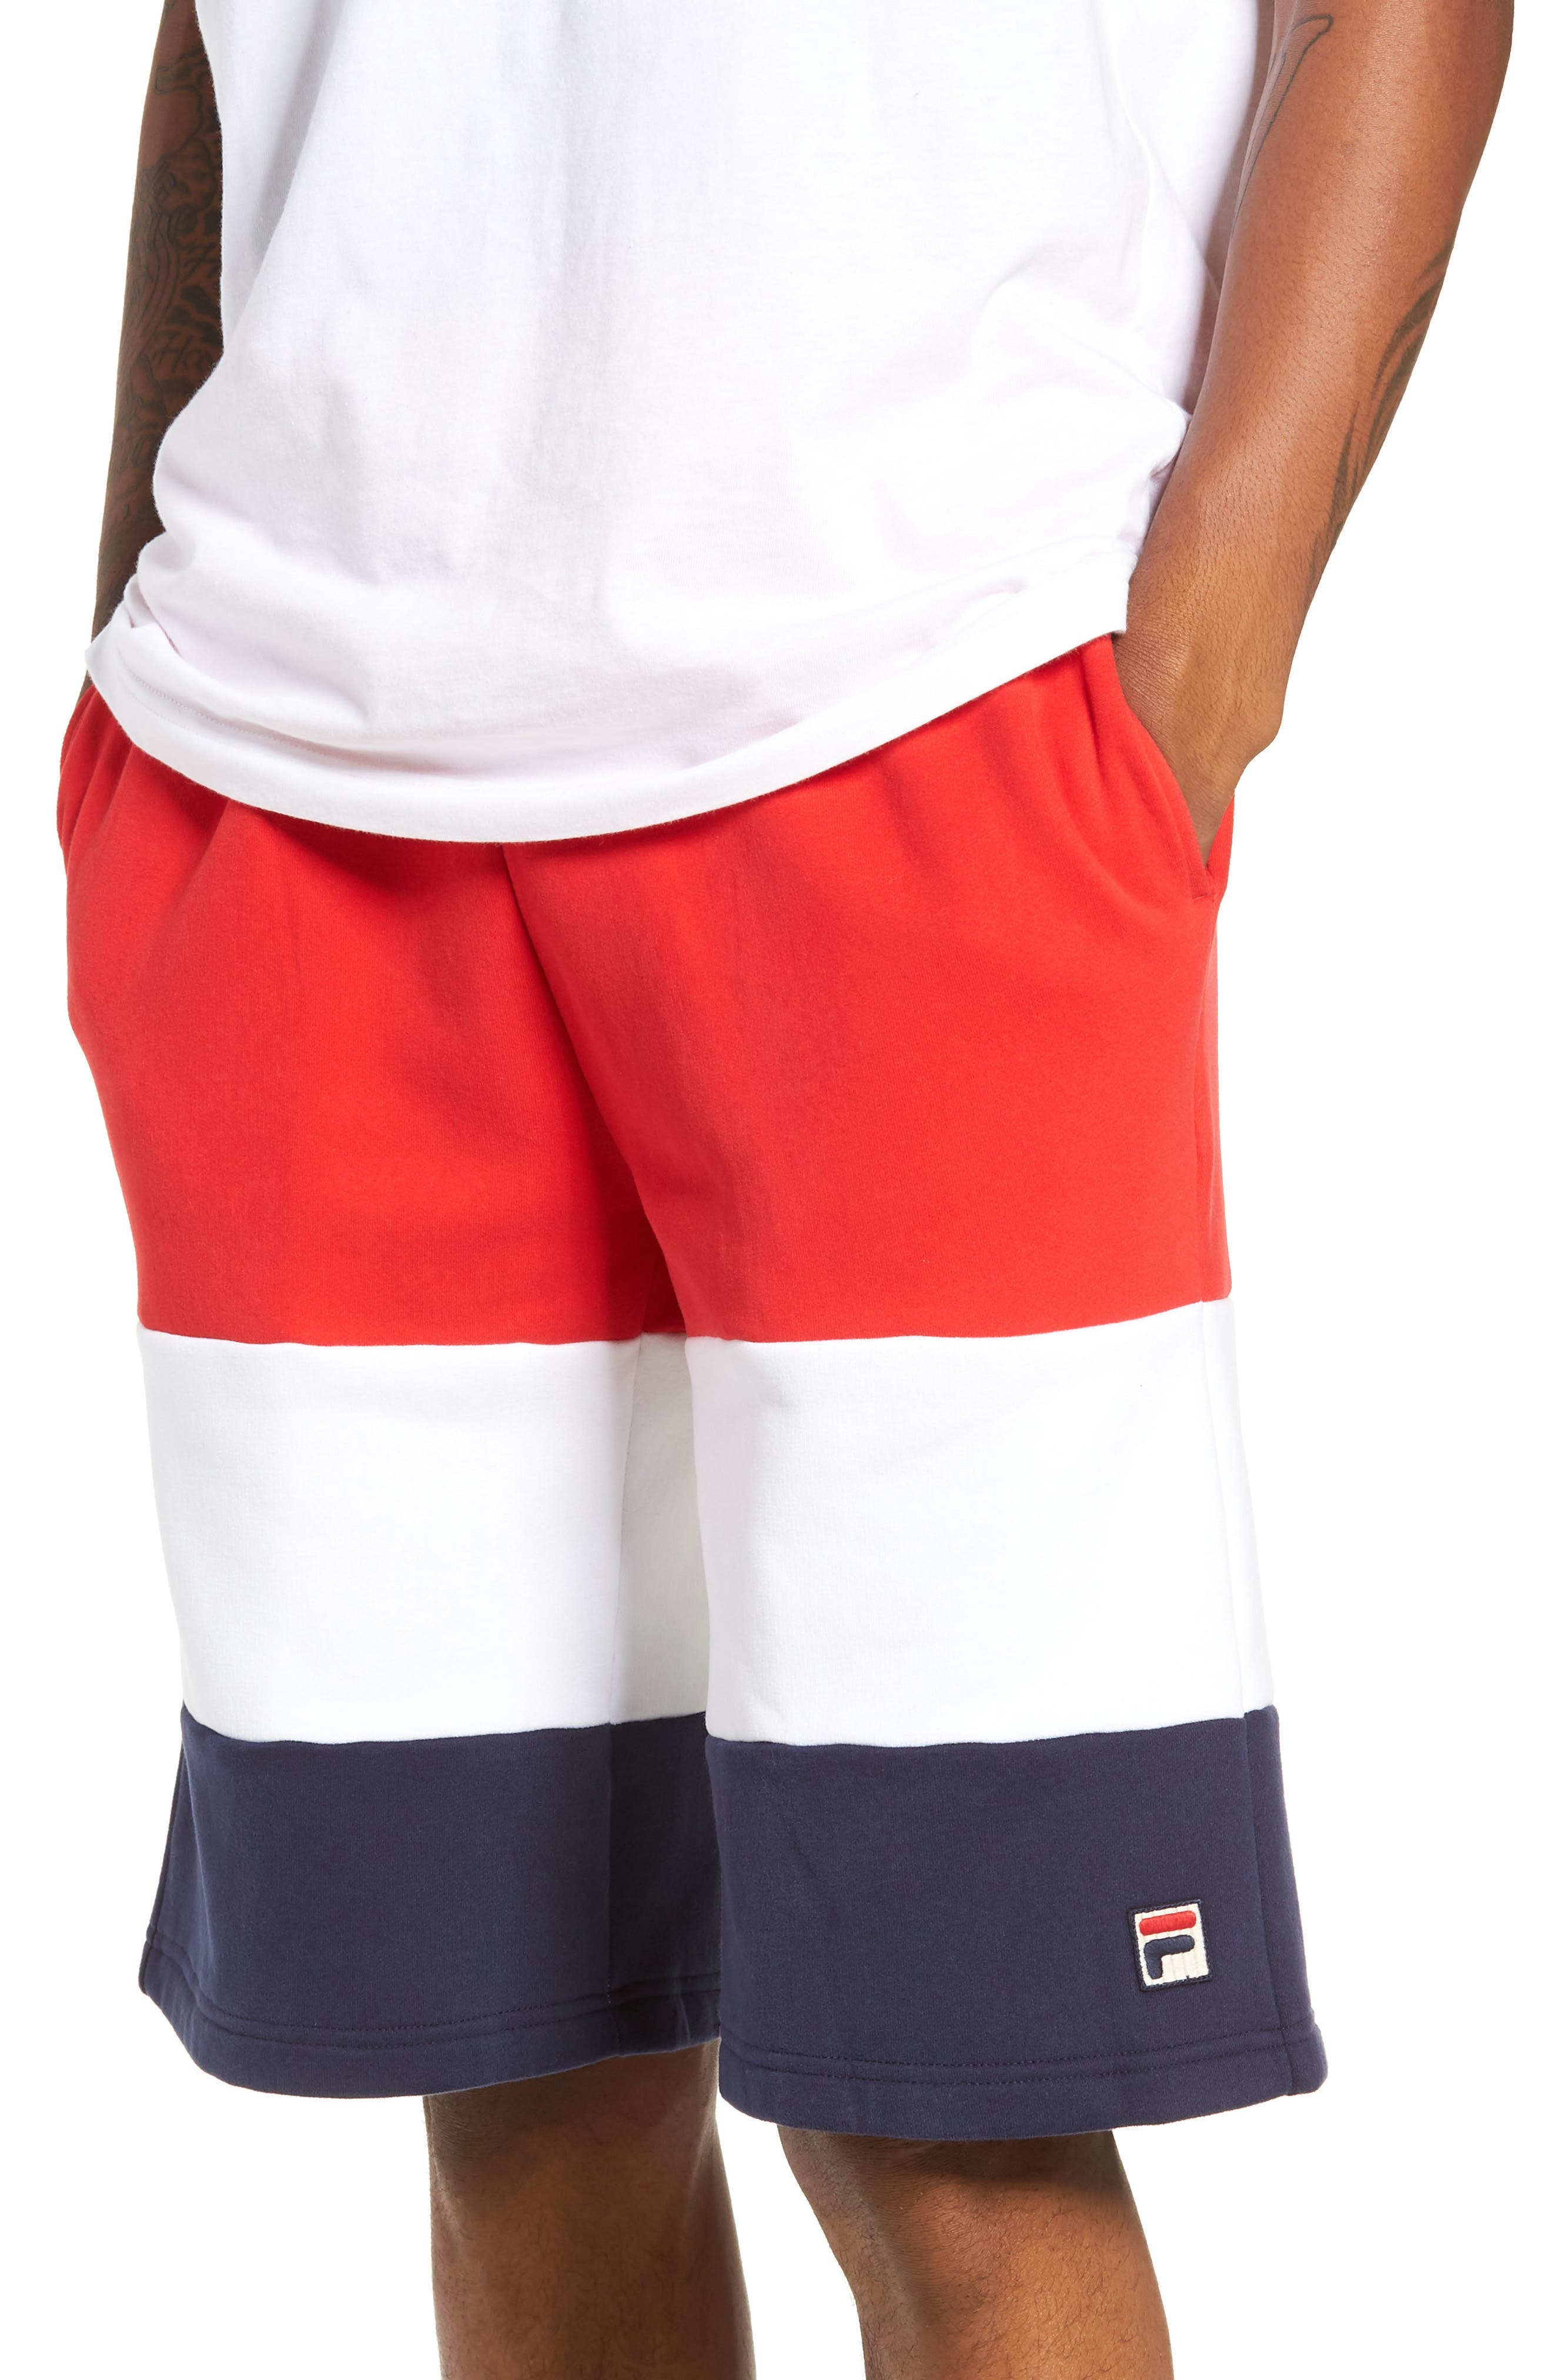 Alanzo Shorts,                             Main thumbnail 1, color,                             CHINESE RED/ WHITE/ NAVY